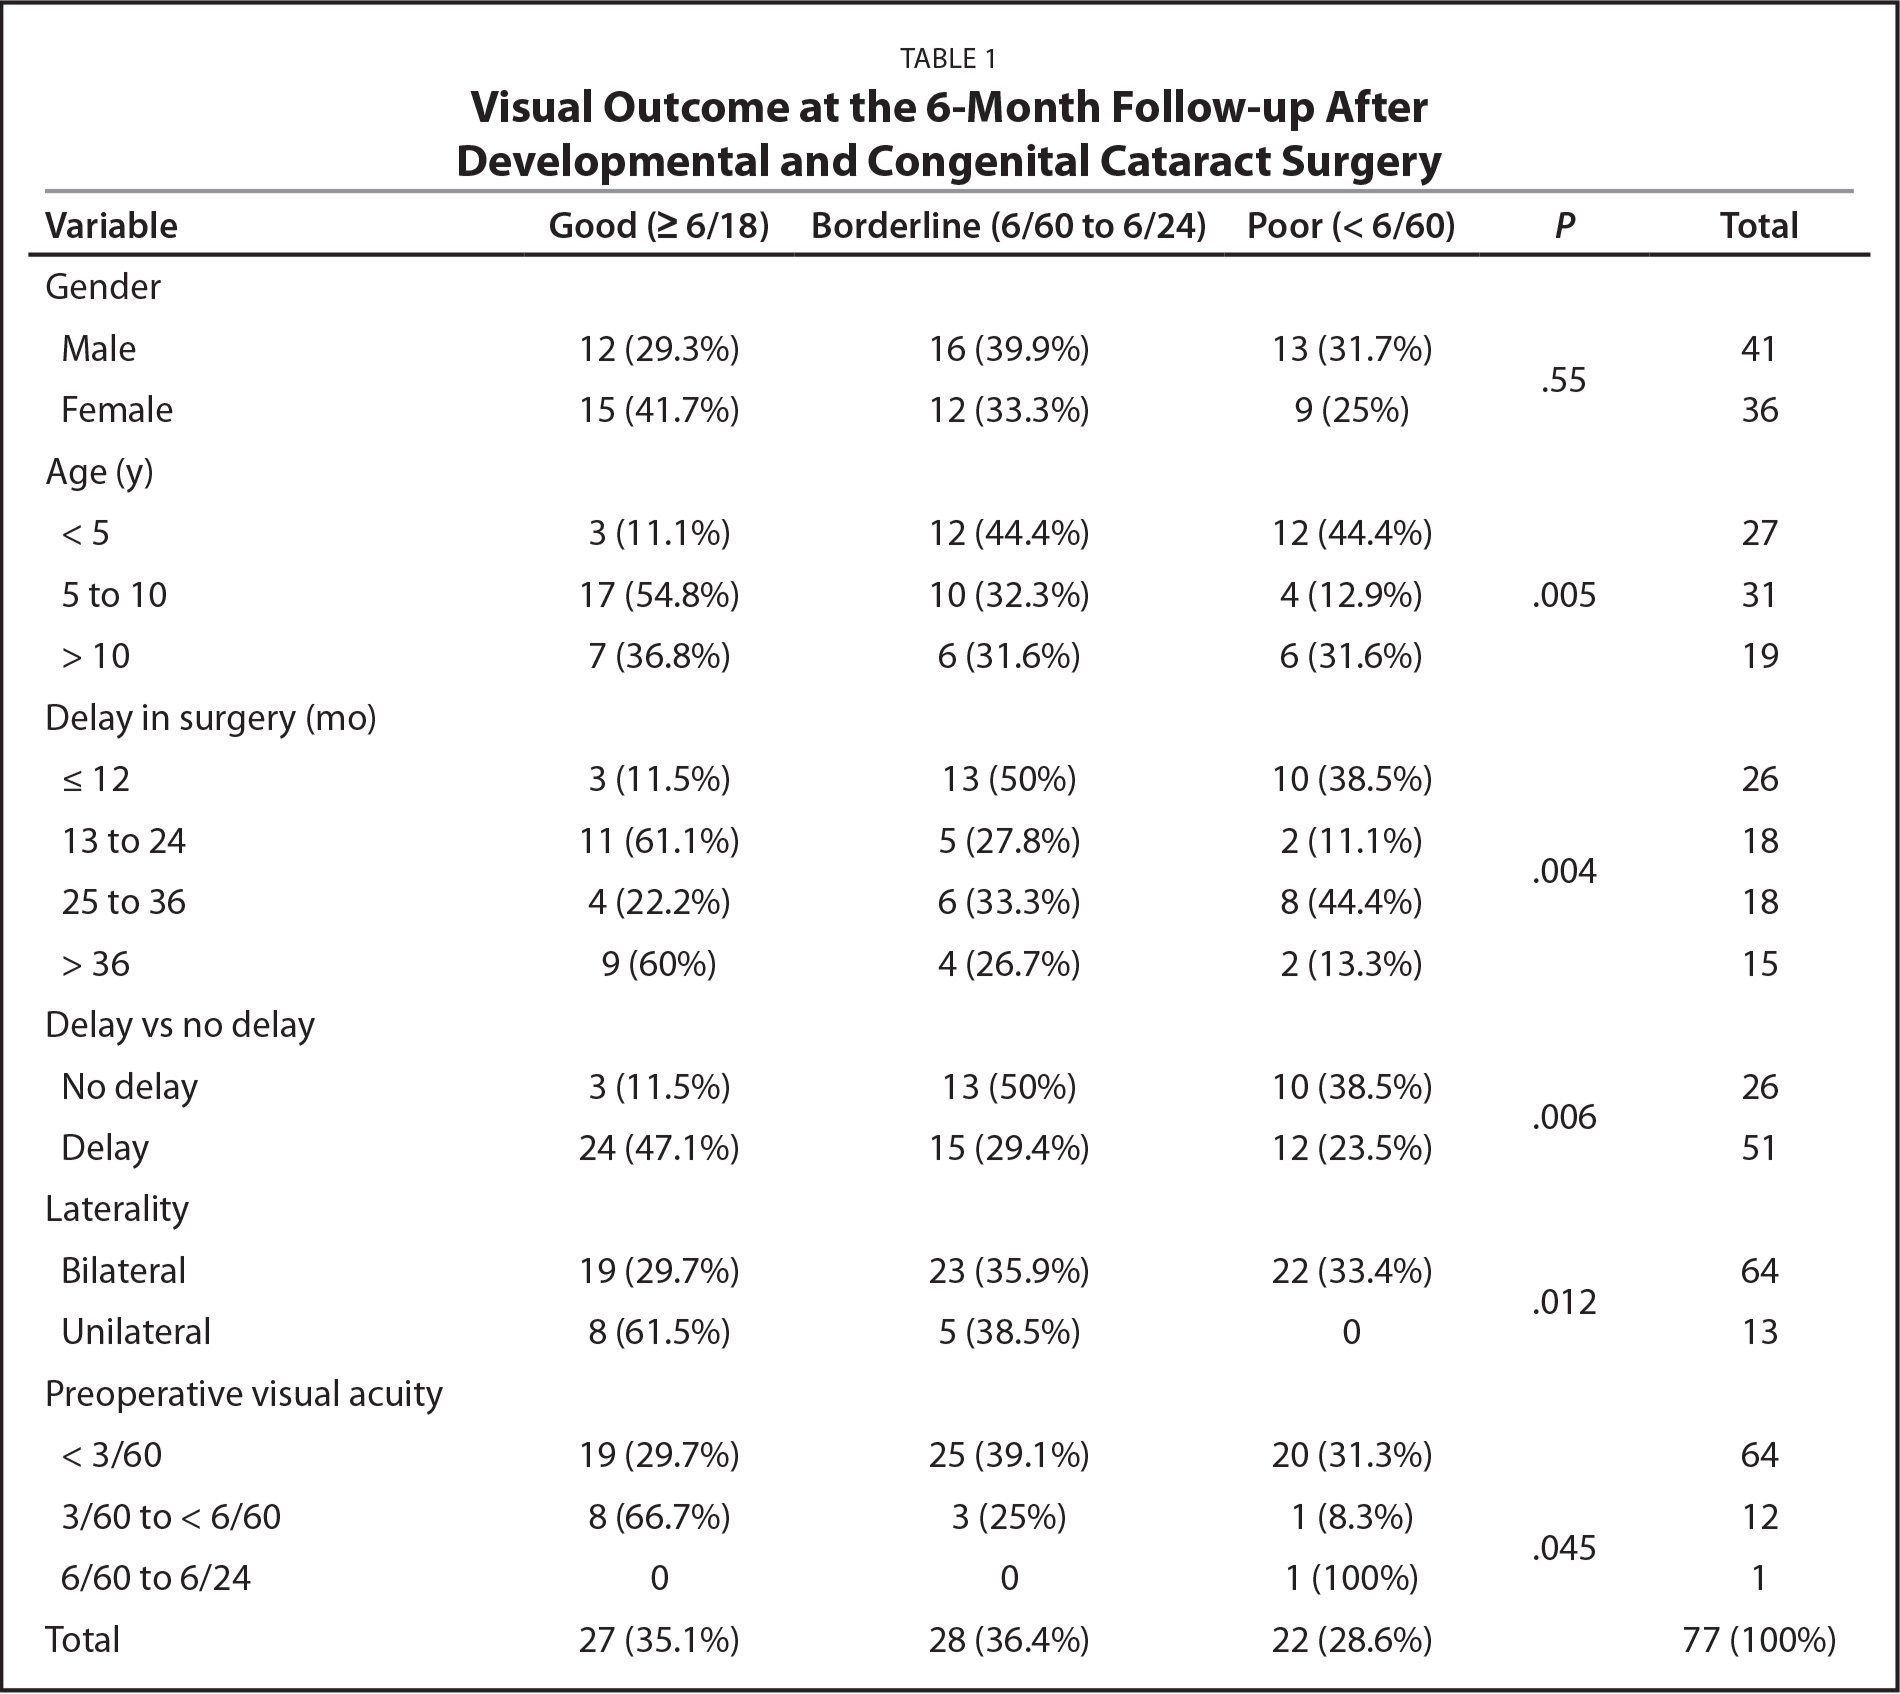 Visual Outcome at the 6-Month Follow-up After Developmental and Congenital Cataract Surgery